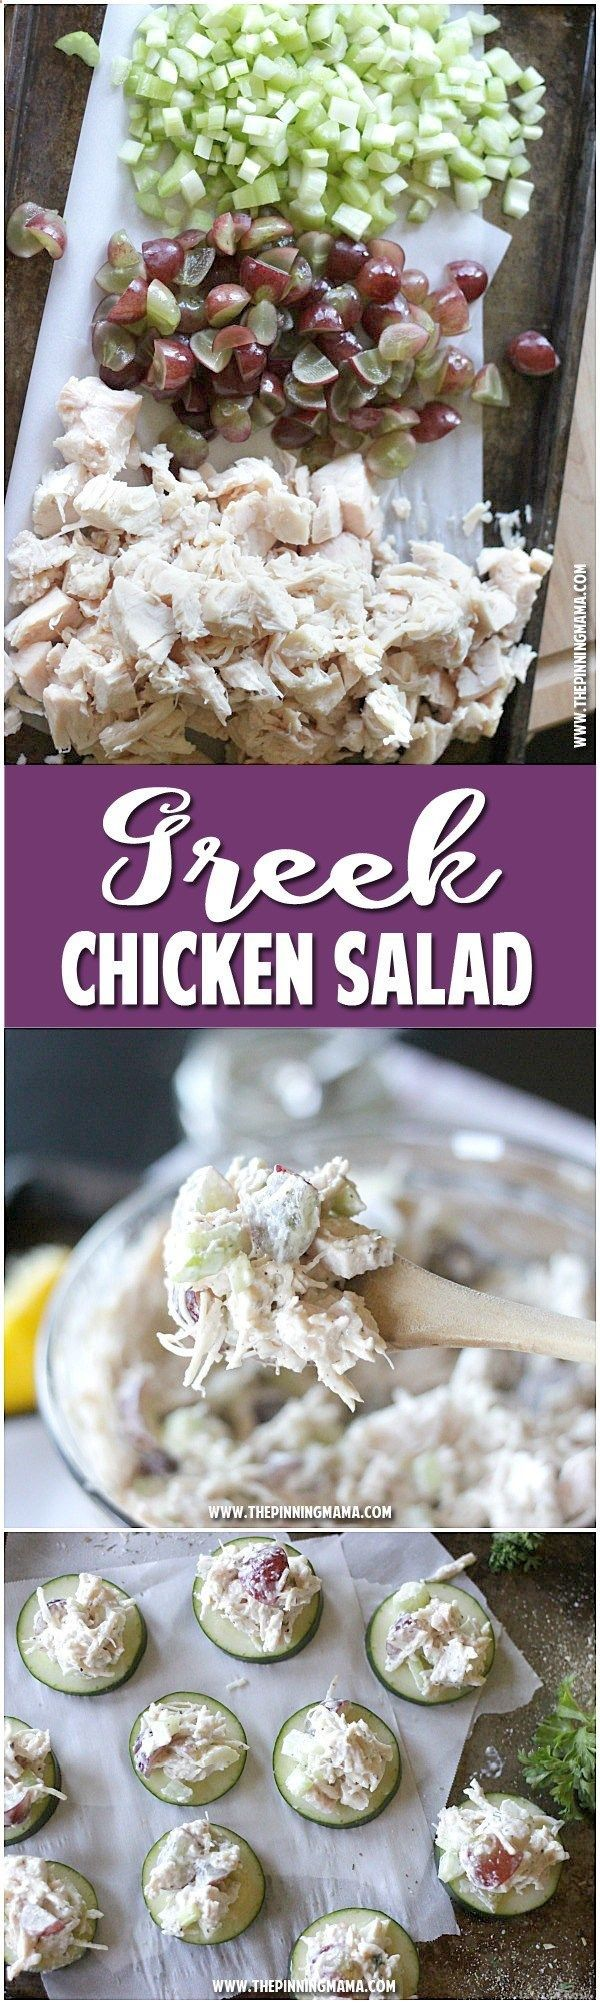 Greek Chicken Salad Recipe - This is AMAZING! Recipe includes directions to make it Whole30 compliant, paleo, gluten free, dairy free, and low carb! I didnt know healthy food tasted this good!